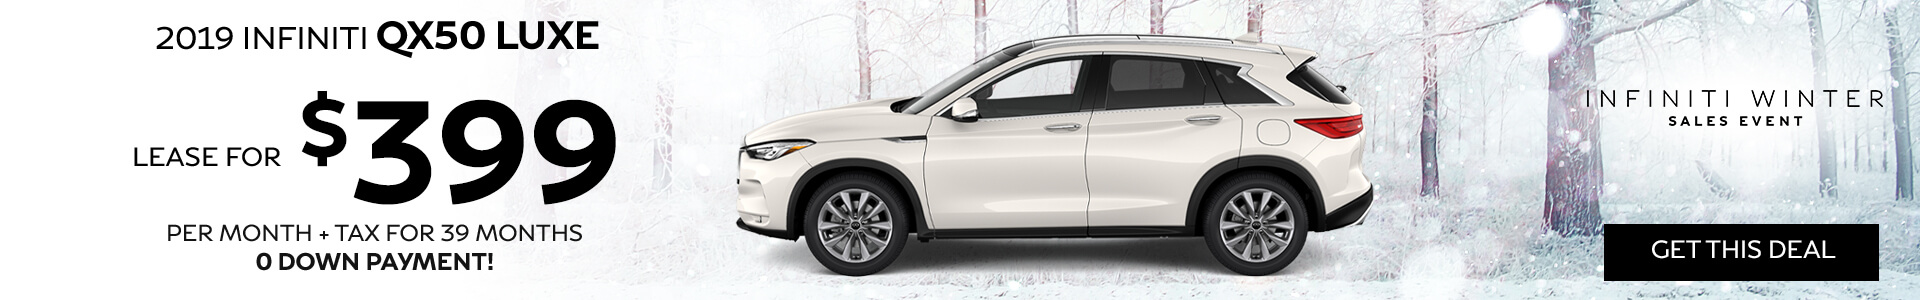 QX50 LUXE - Lease for $399